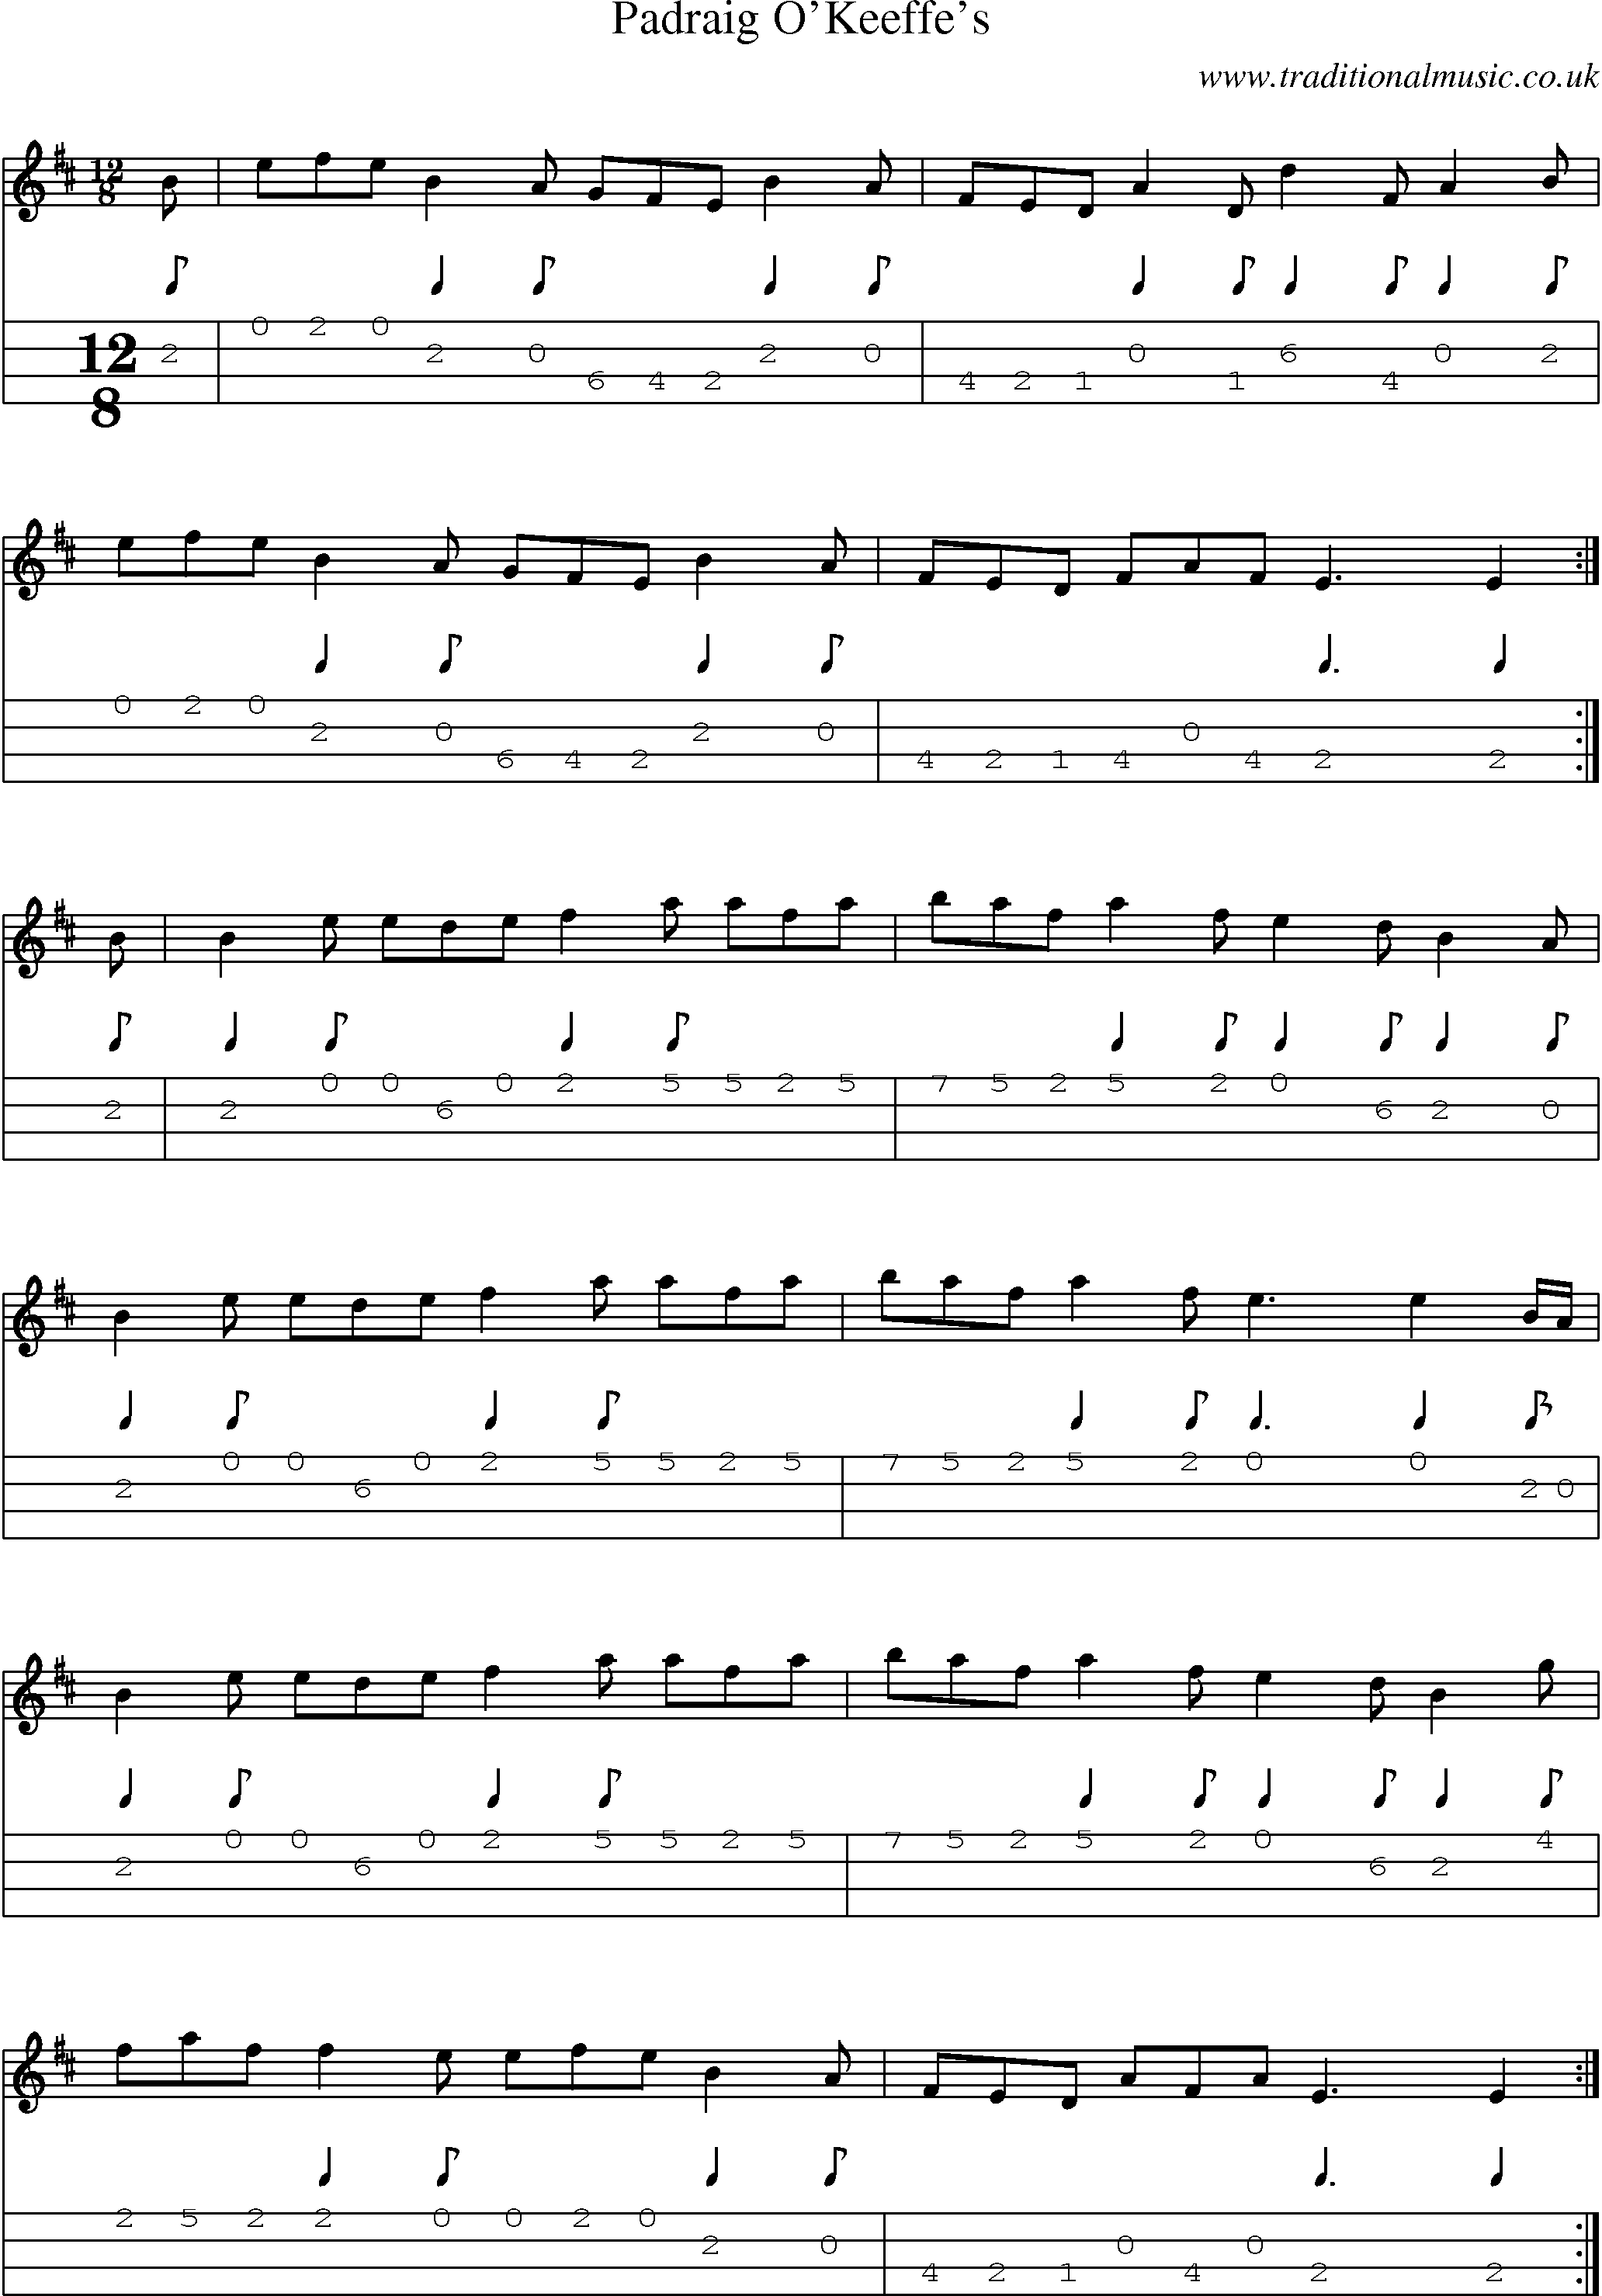 Irish Music Tune: Padraig Okeeffes with Mandolin Tab, Sheetmusic, Midi, Mp3 and PDF